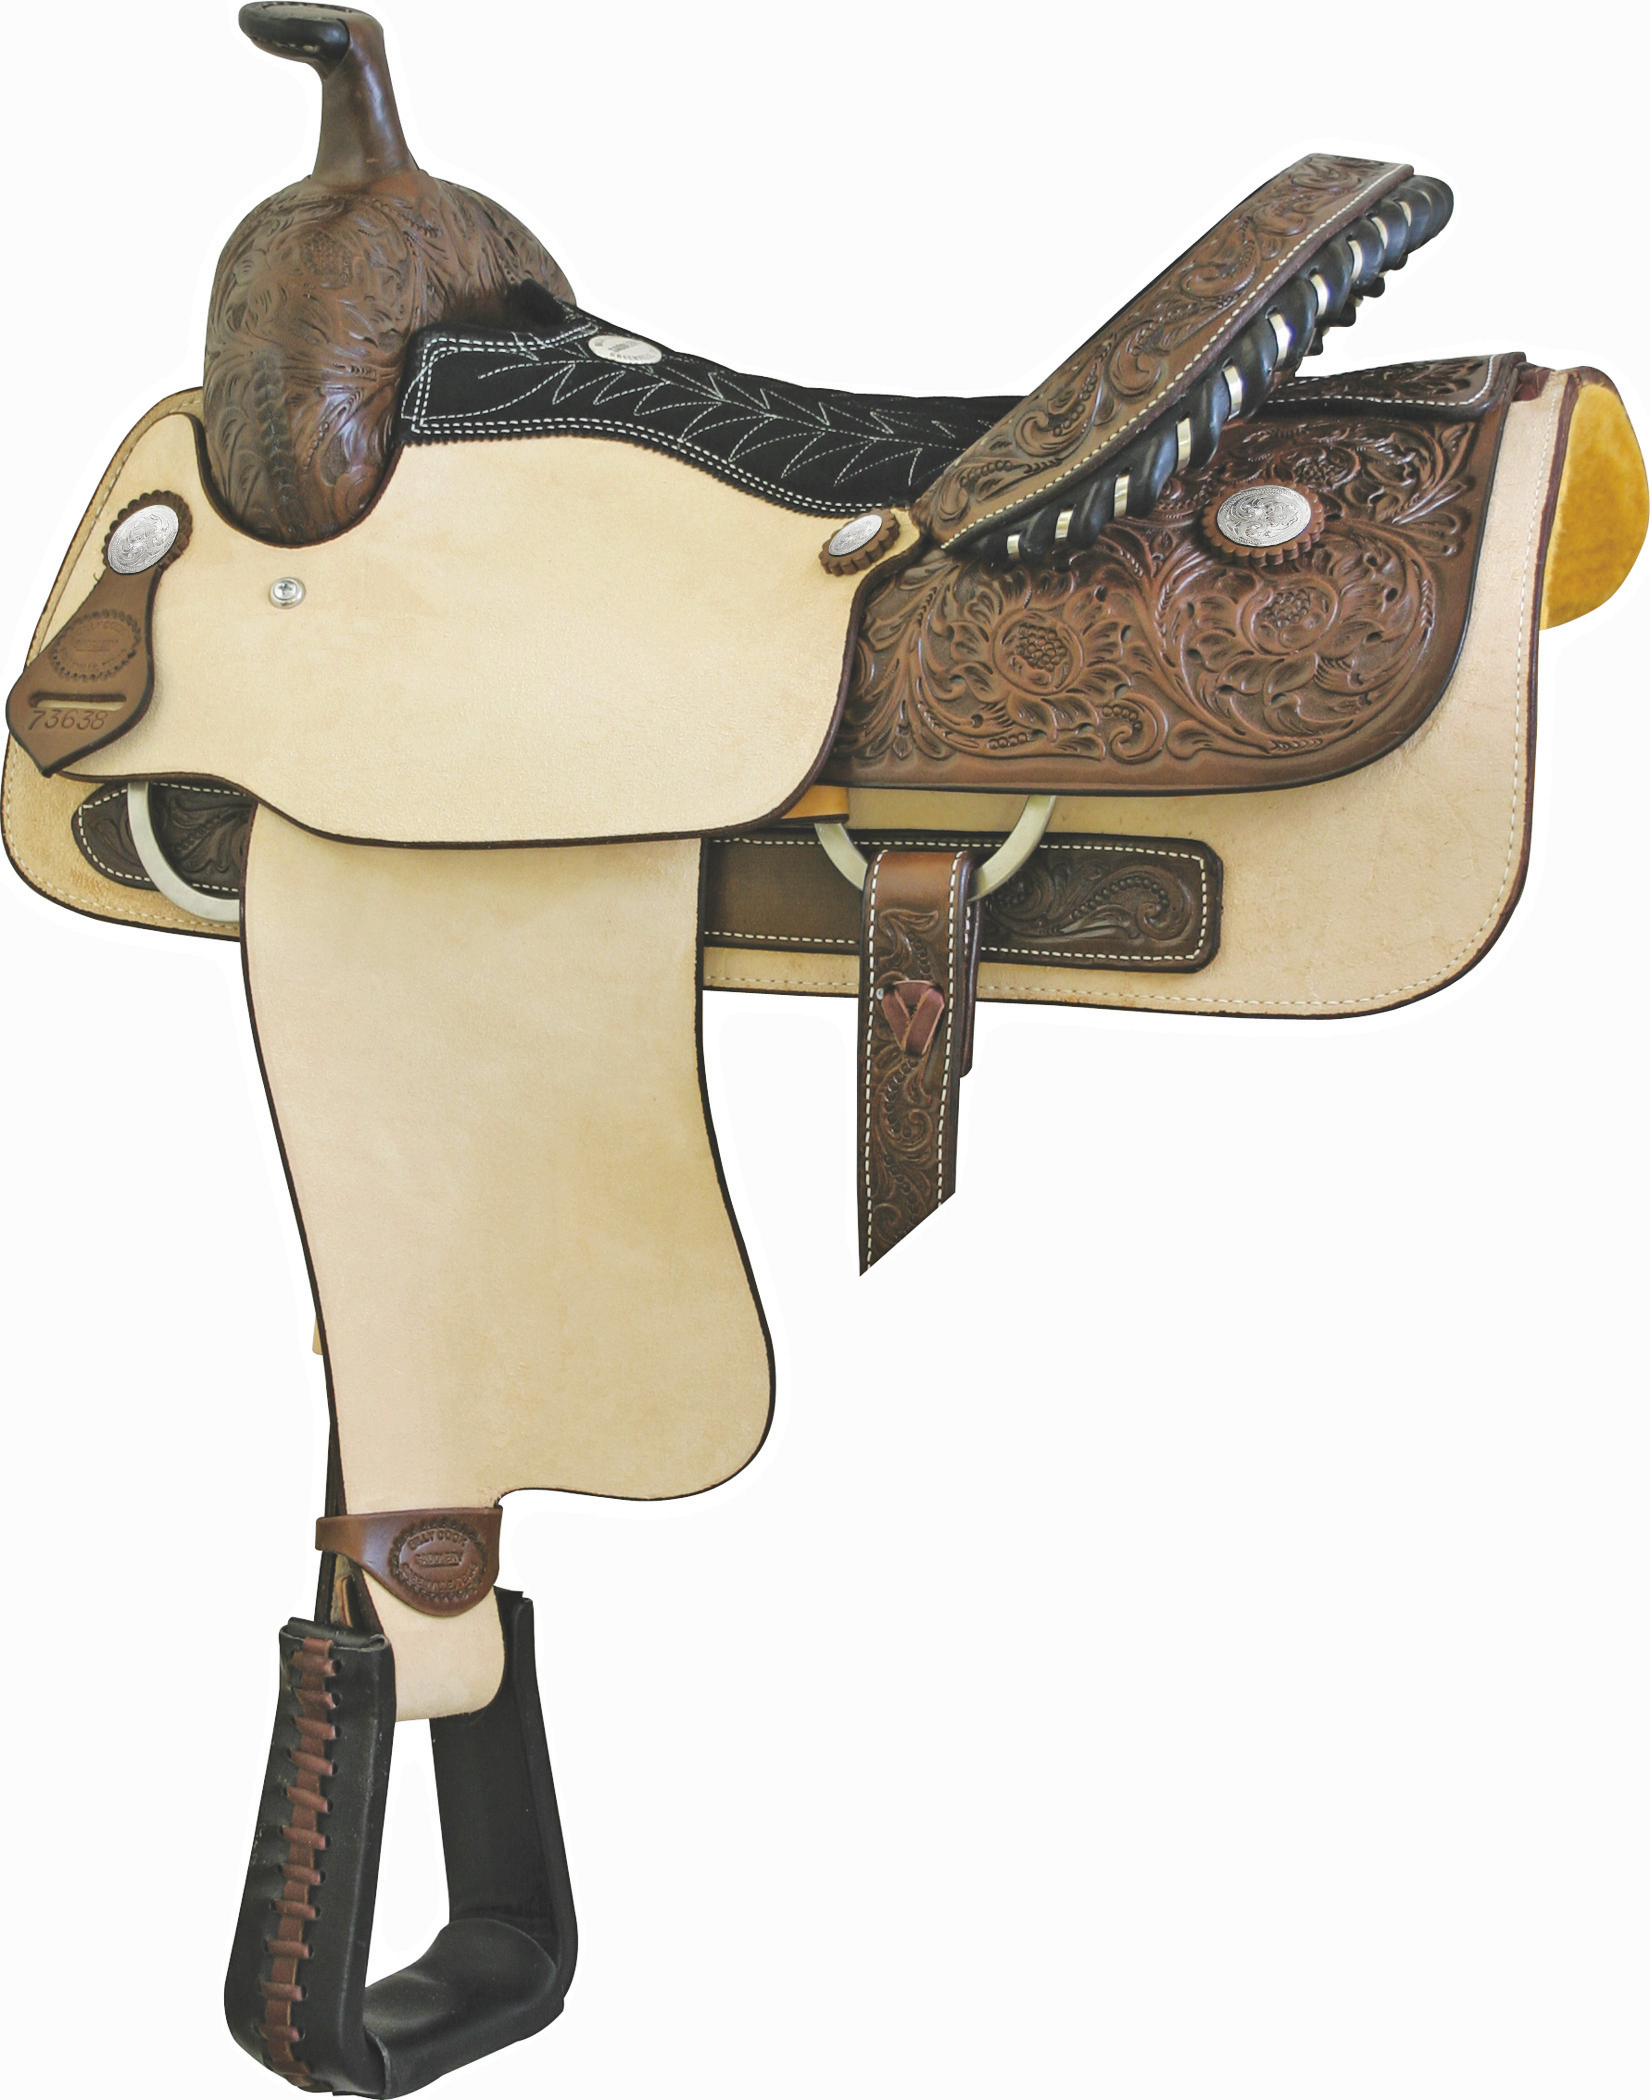 Saddle shaped neck shield clipart 20 free Cliparts